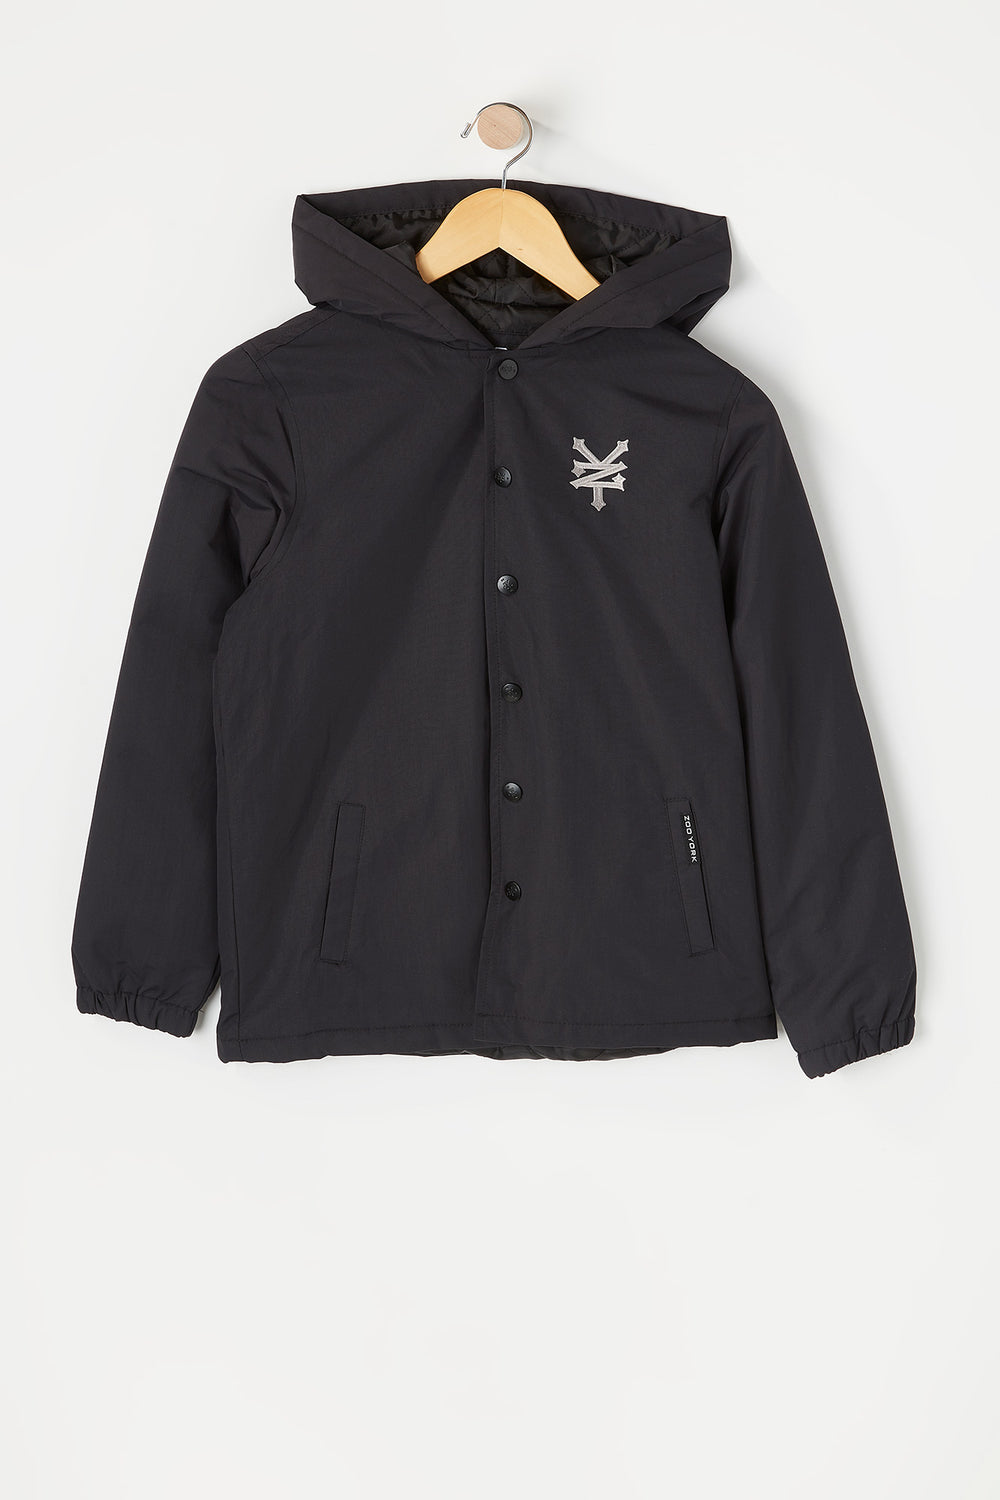 Zoo York Youth Hooded Coach Jacket Black